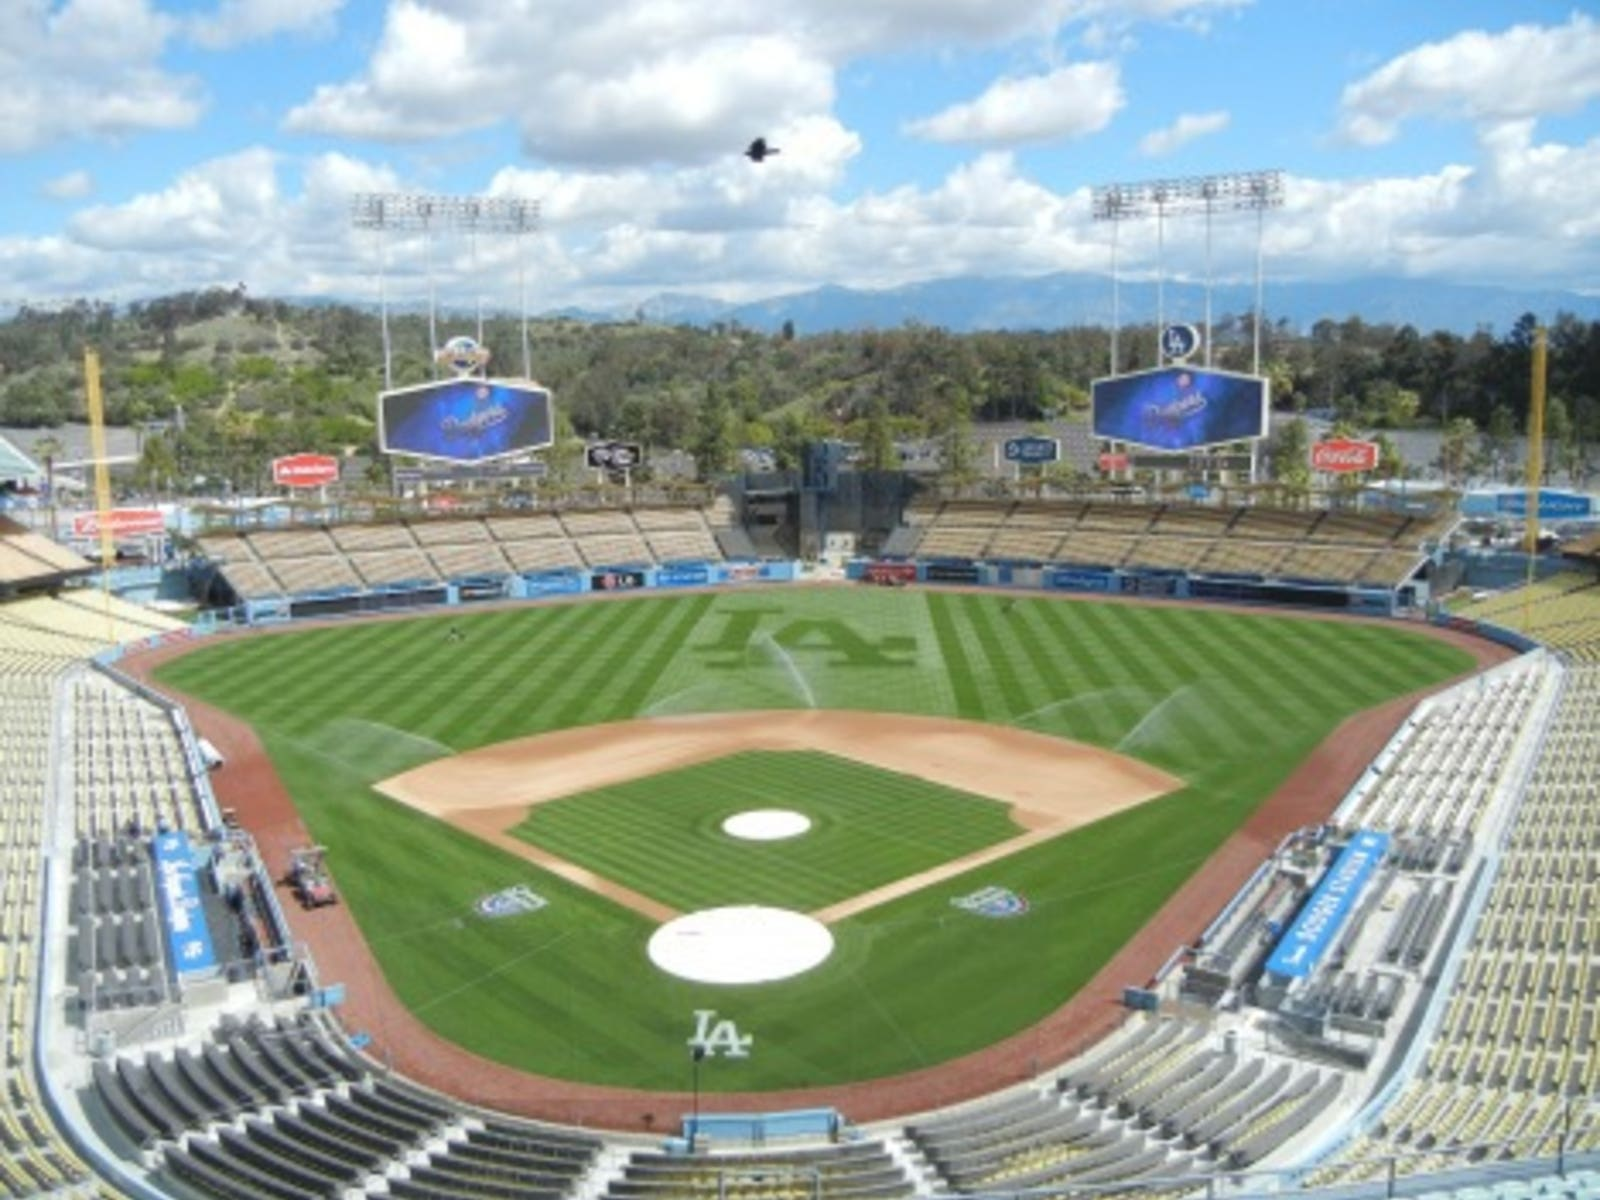 Los Angeles Dodgers / Dodger Stadium